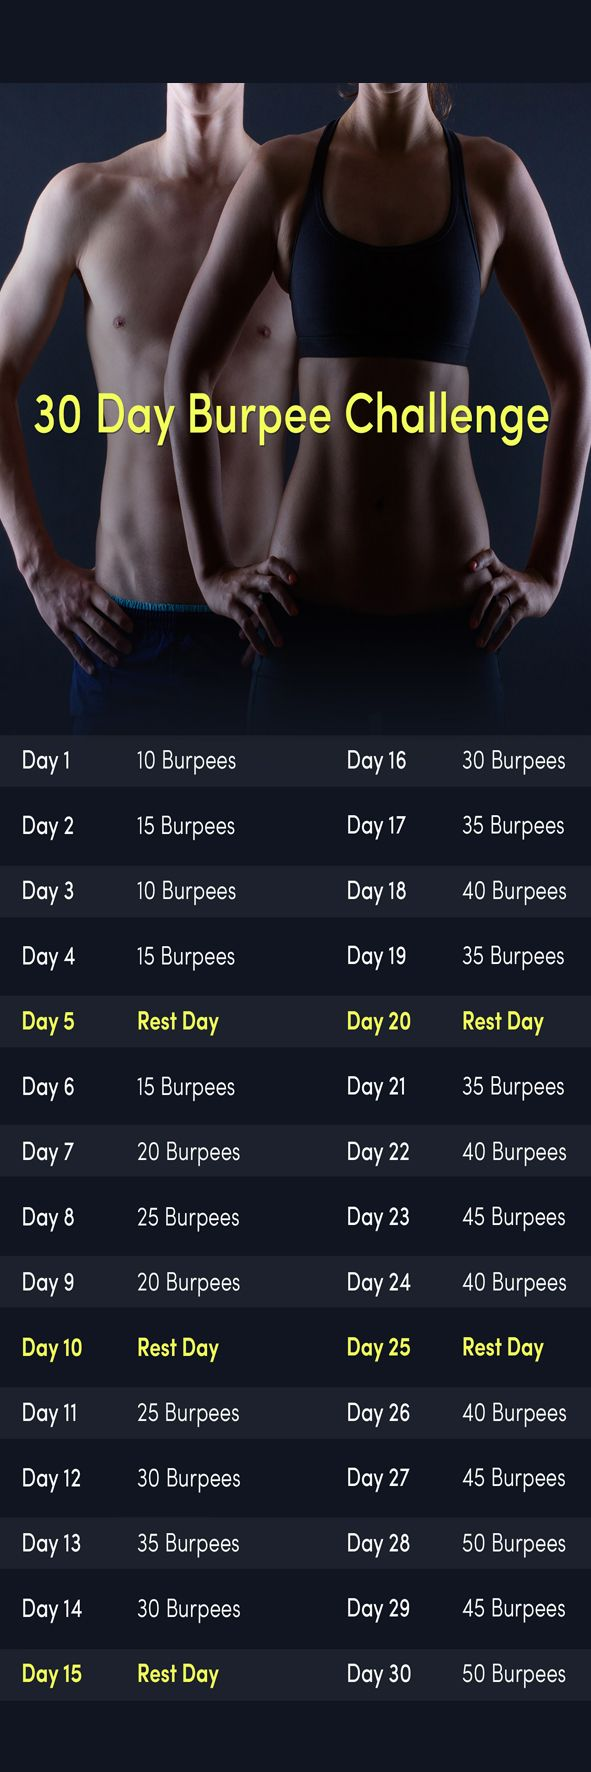 Join our 30 day burpee challenge to work your entire body and strengthen your core in under a month. Simply print out the plan and perform the number of burpees for each day. If you already feel confident with your burpees, ramp up your challenge by doubling the time each day! UNSURE OF HOW TO DO PROPERLY BURPEES? CHECK OUT OUR 'HOW TO' VIDEO!